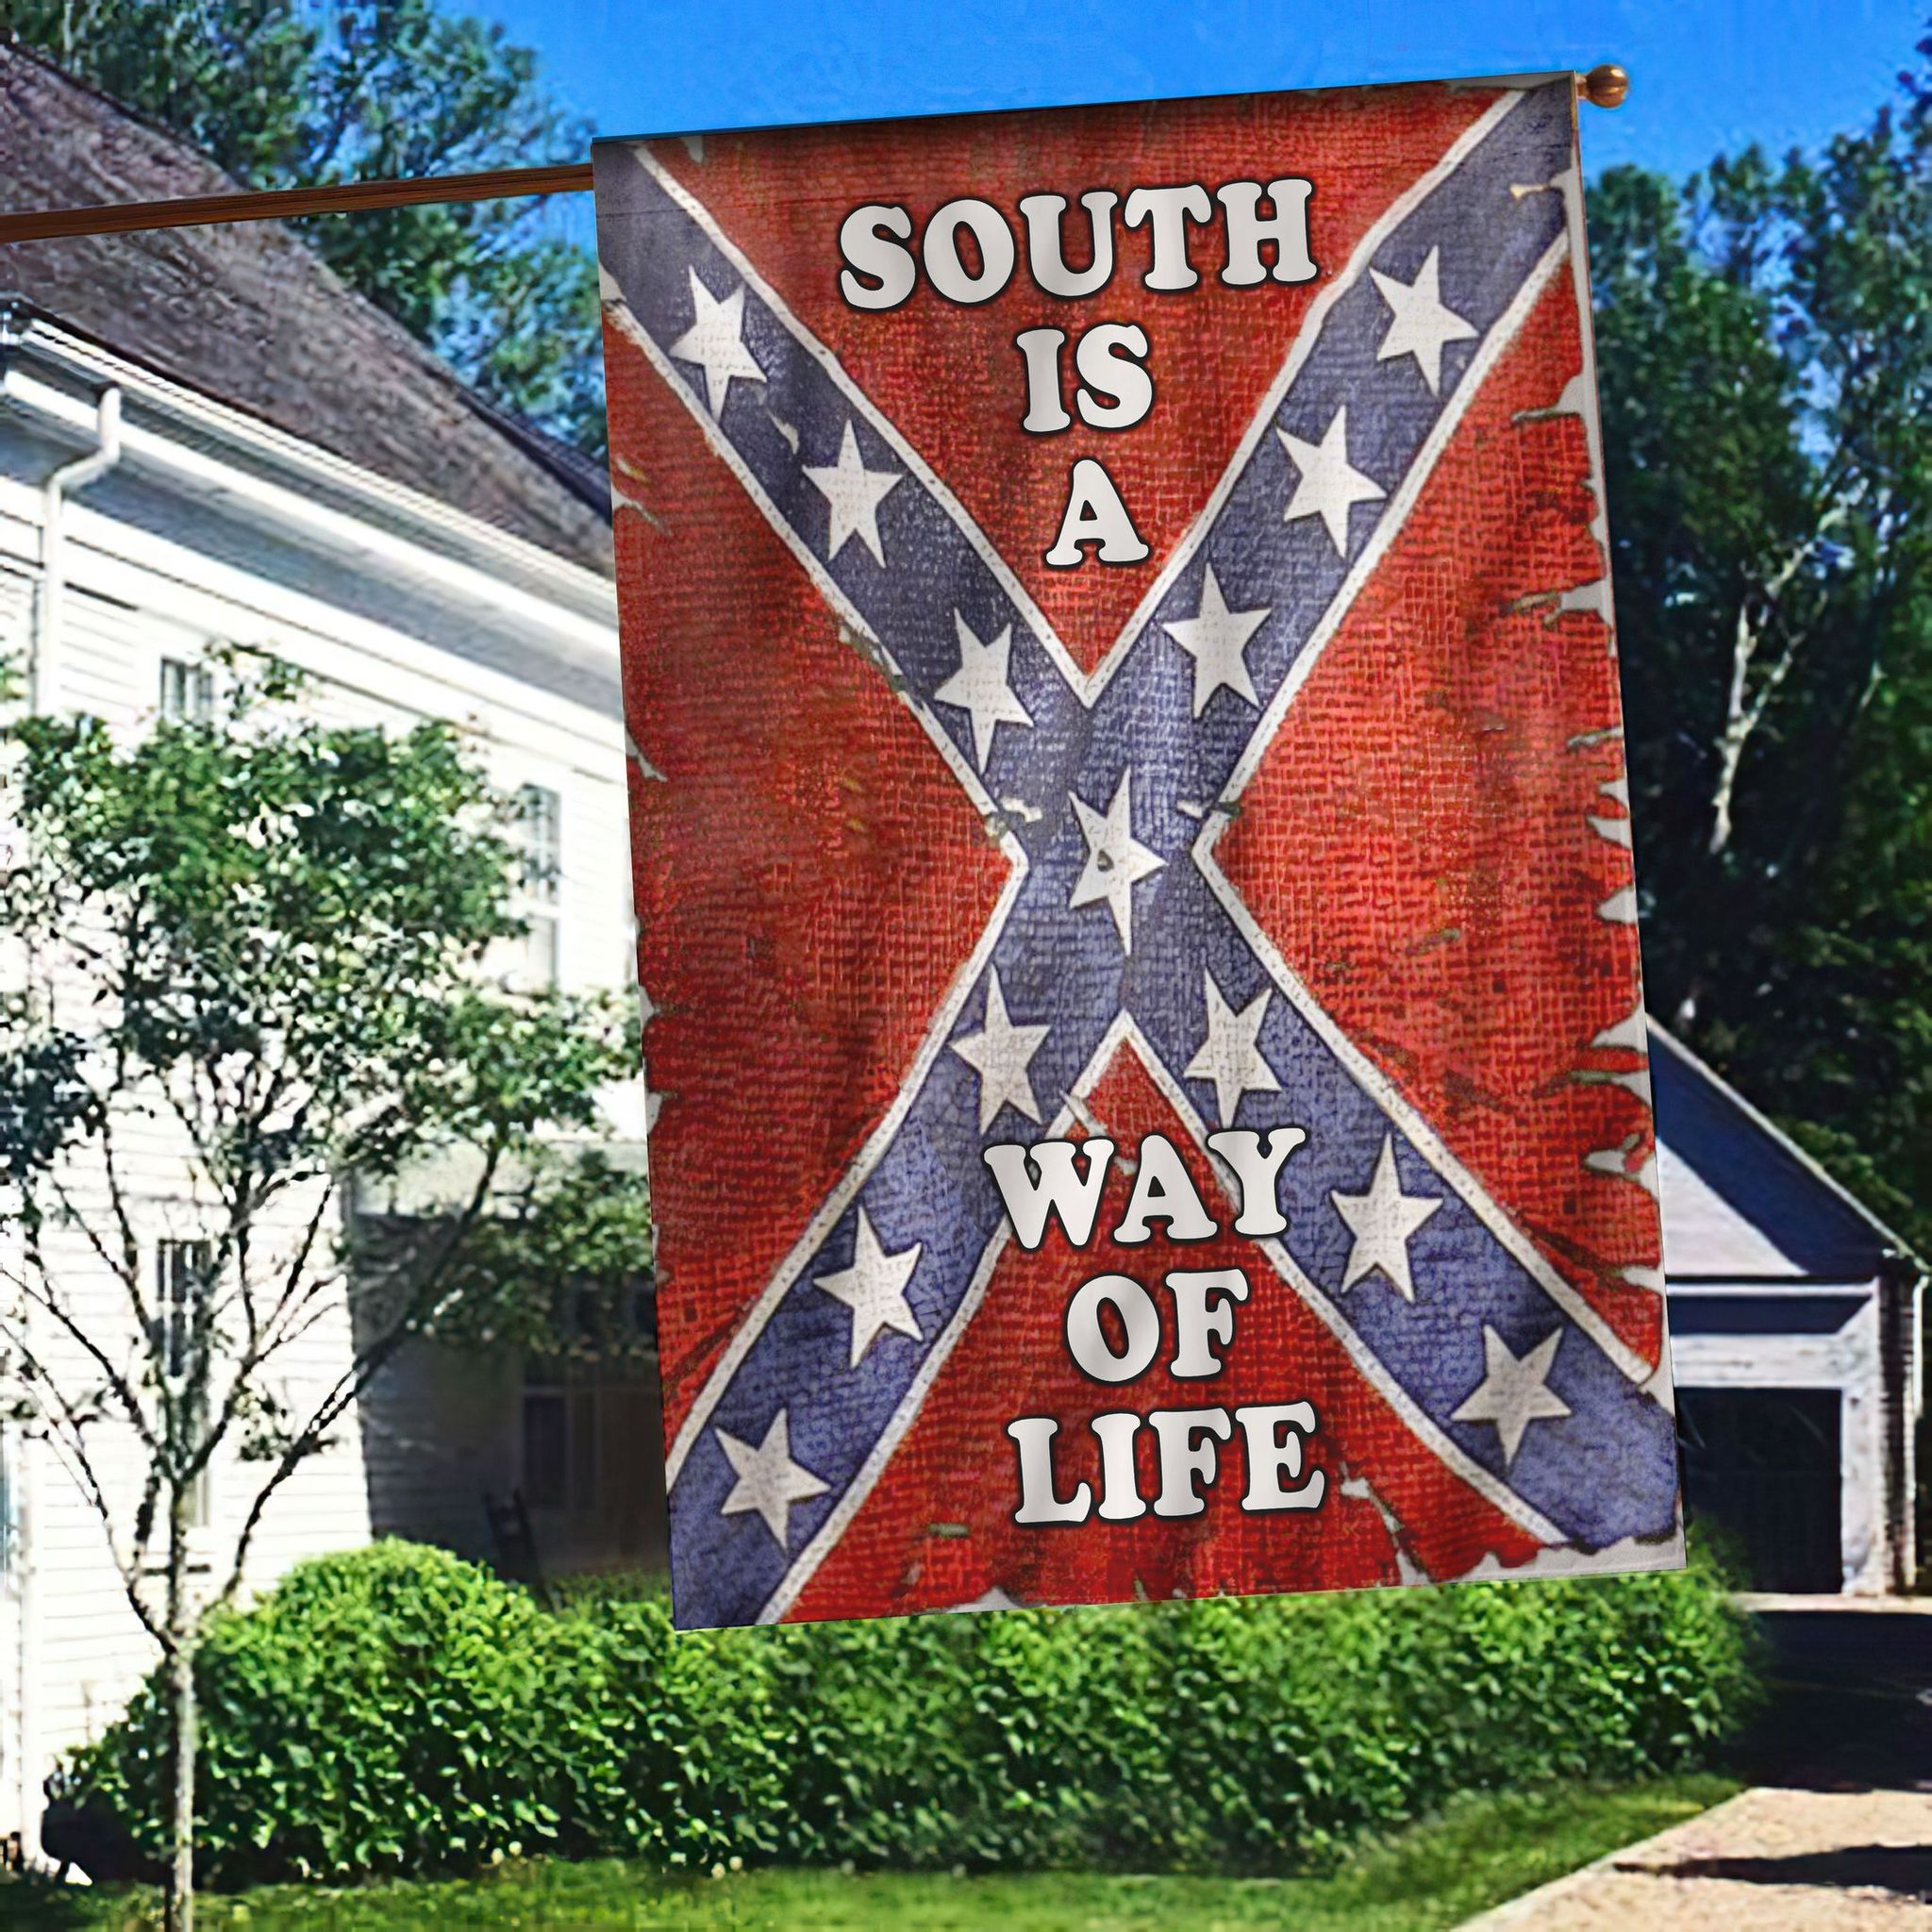 South is a way of life flag - Picture 1